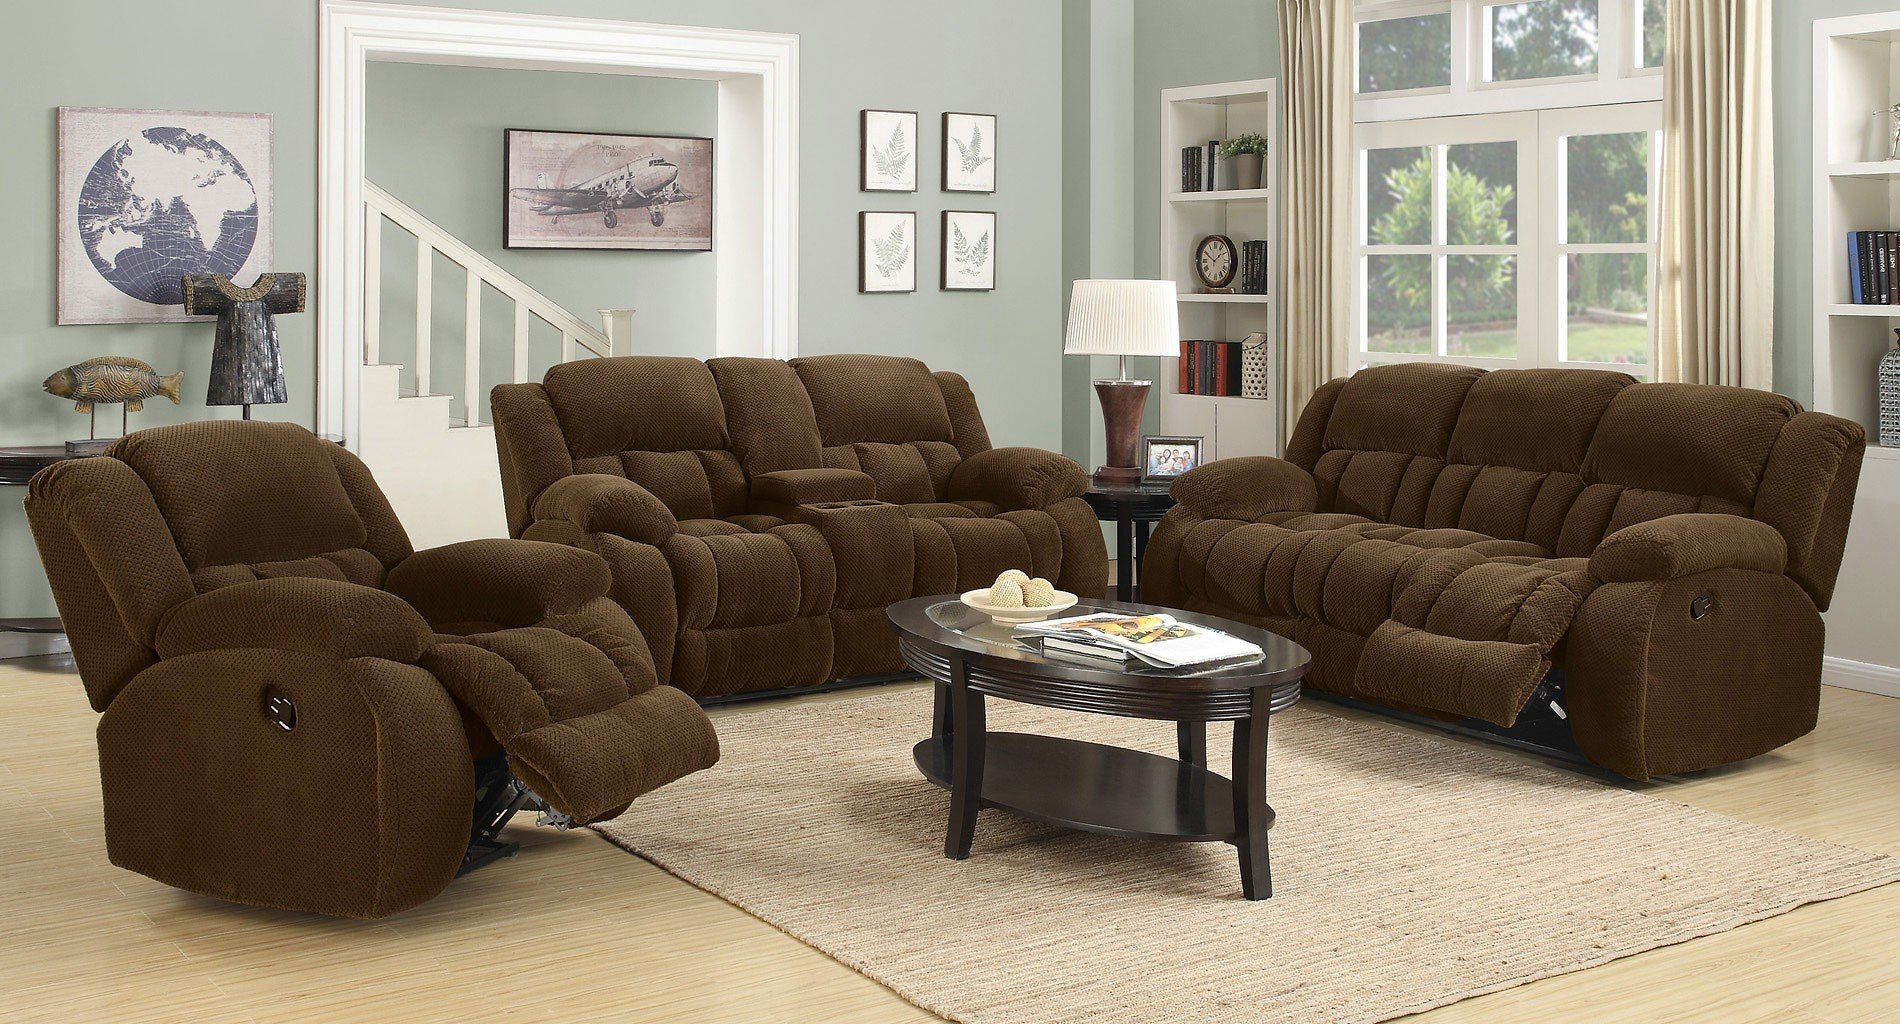 Reclining Living Room Sets and plus large leather sectional with chaise and plus matching living room furniture and plus oversized living room furniture